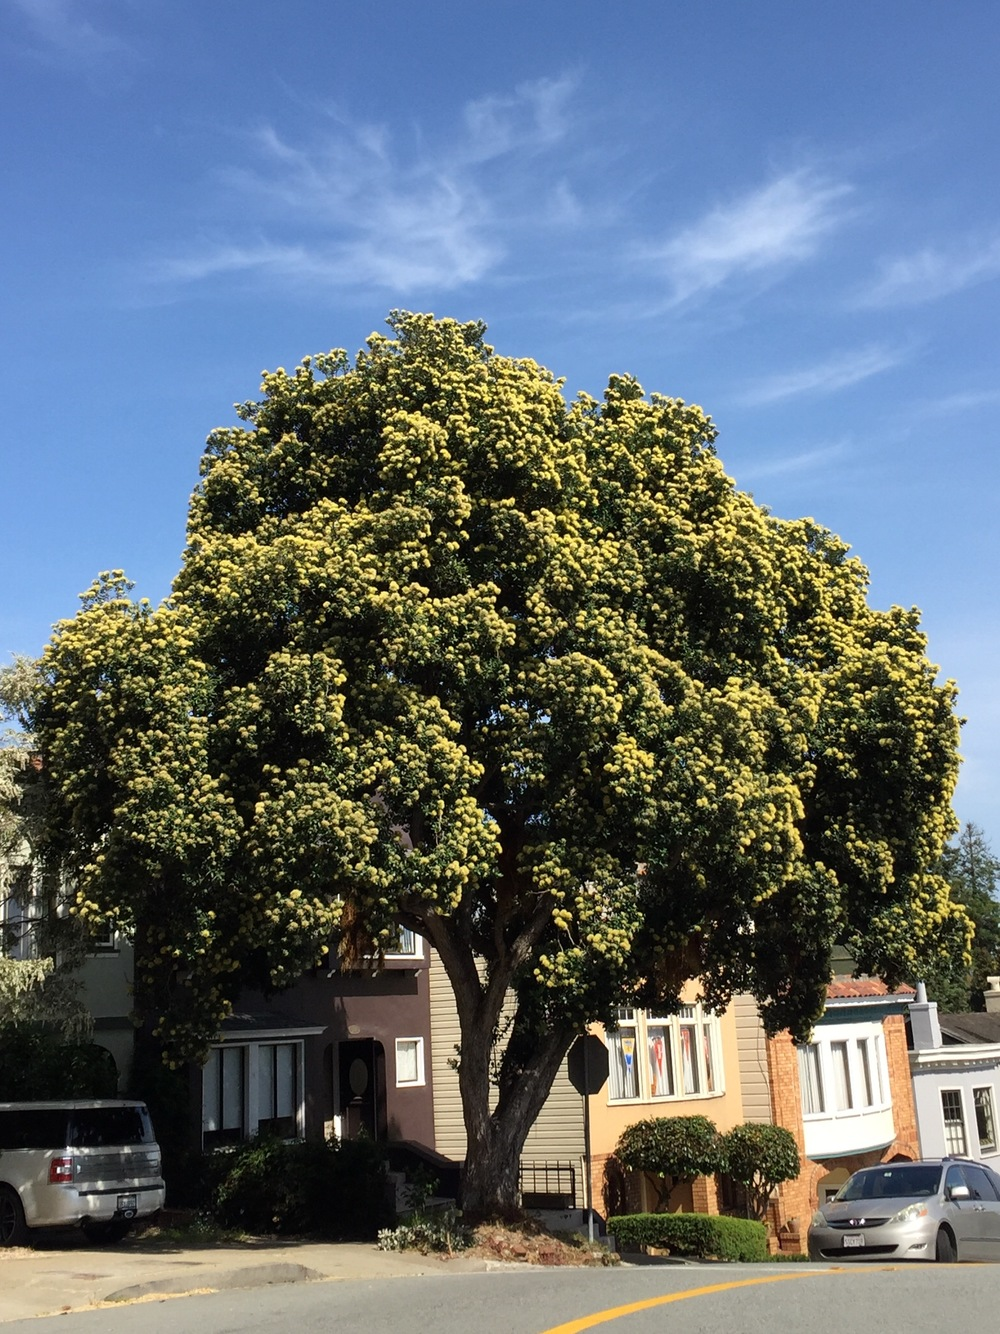 Yellow New Zealand Christmas Tree - 1221 Stanyan Street